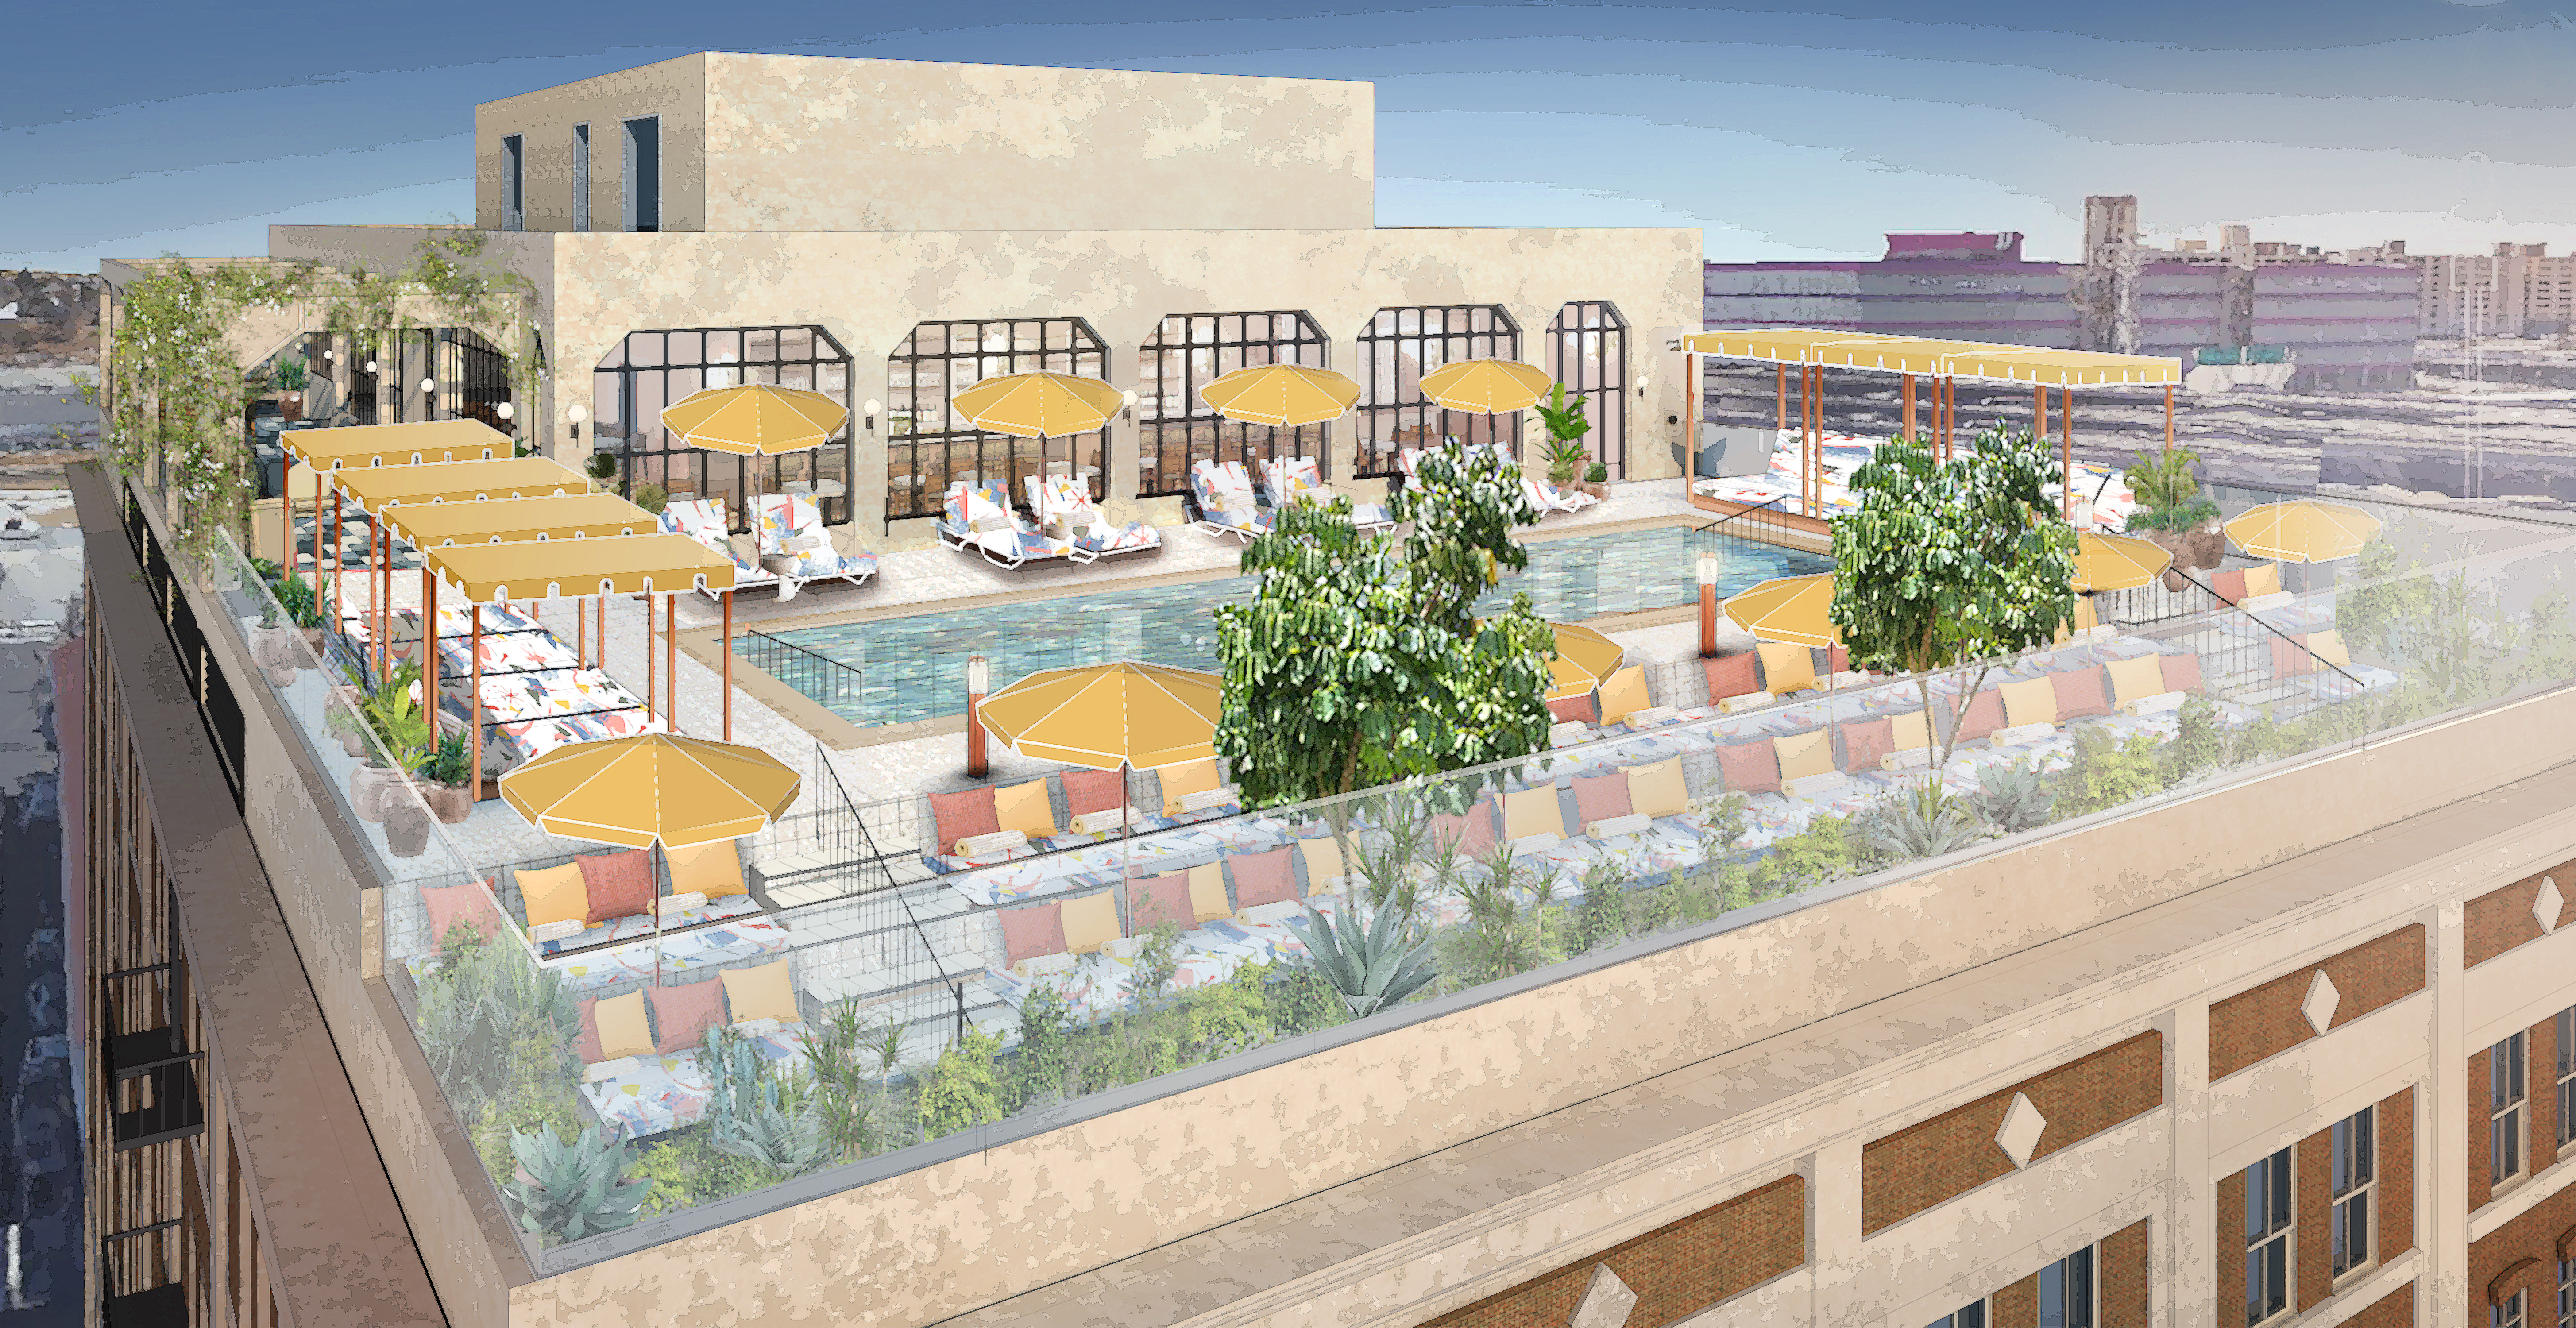 A rendering of the warehouse's rooftop with a rectangular pool surrounded by lounge chairs and umbrellas. Behind the pool is an enclosed area for lounging, eating, and events.